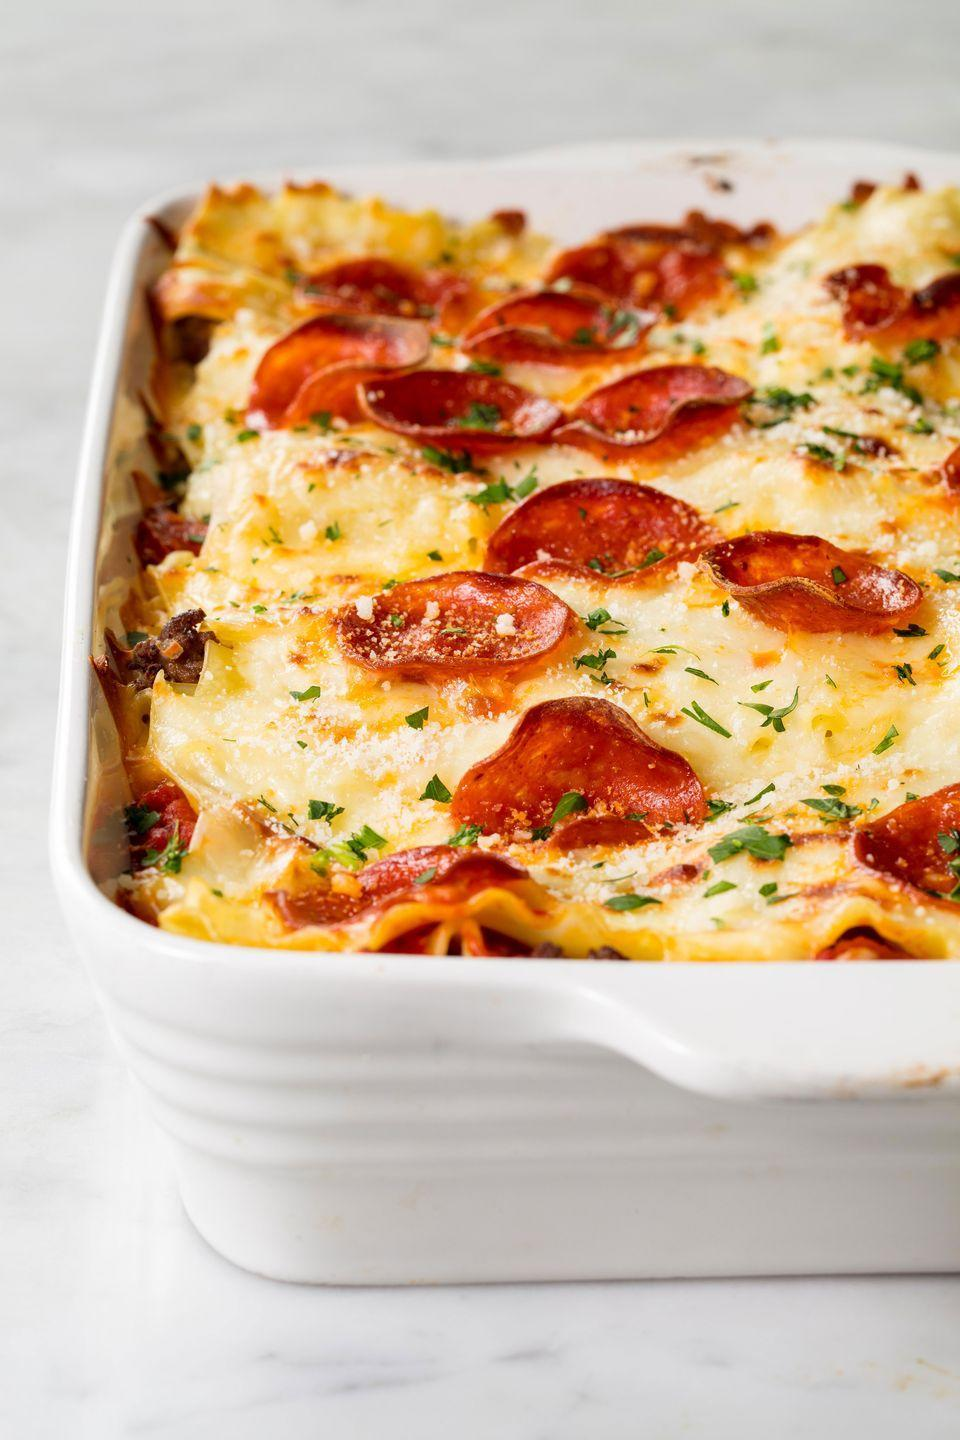 """<p>The food mashup to end them all.</p><p>Get the recipe from <a href=""""https://www.delish.com/cooking/recipe-ideas/recipes/a48503/pizzagna-recipe/"""" rel=""""nofollow noopener"""" target=""""_blank"""" data-ylk=""""slk:Delish"""" class=""""link rapid-noclick-resp"""">Delish</a>.</p>"""